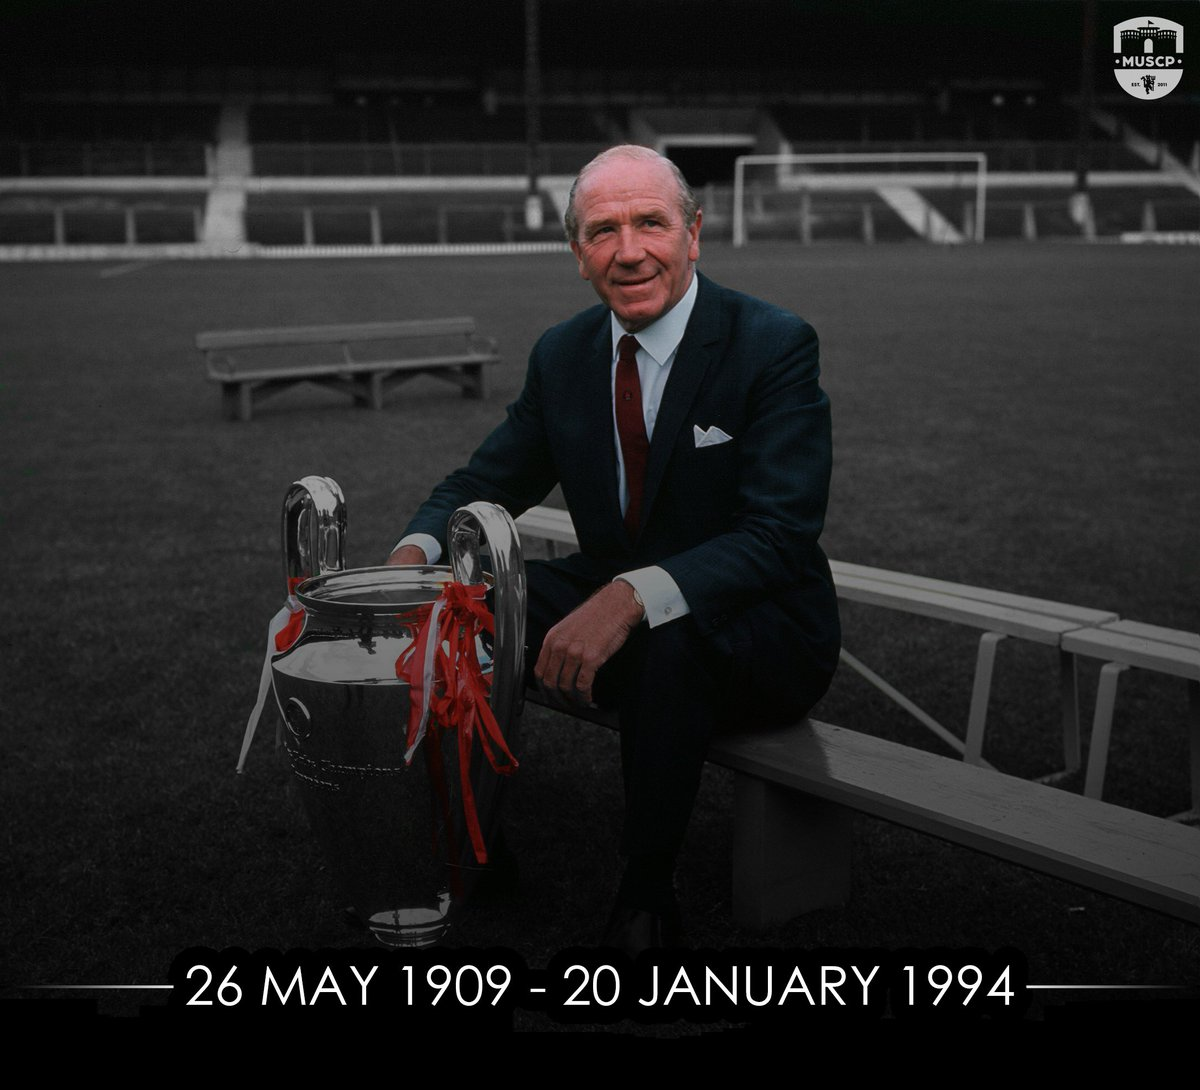 Today marks the 25th anniversary of the passing of a man who overcame all the odds. A man who constructed the team that would overcome all the odds. A man who gave @ManUtd its greatest miracle. Sir Matt Busby, you created the Busby Babes. And your legacy will live on forever.